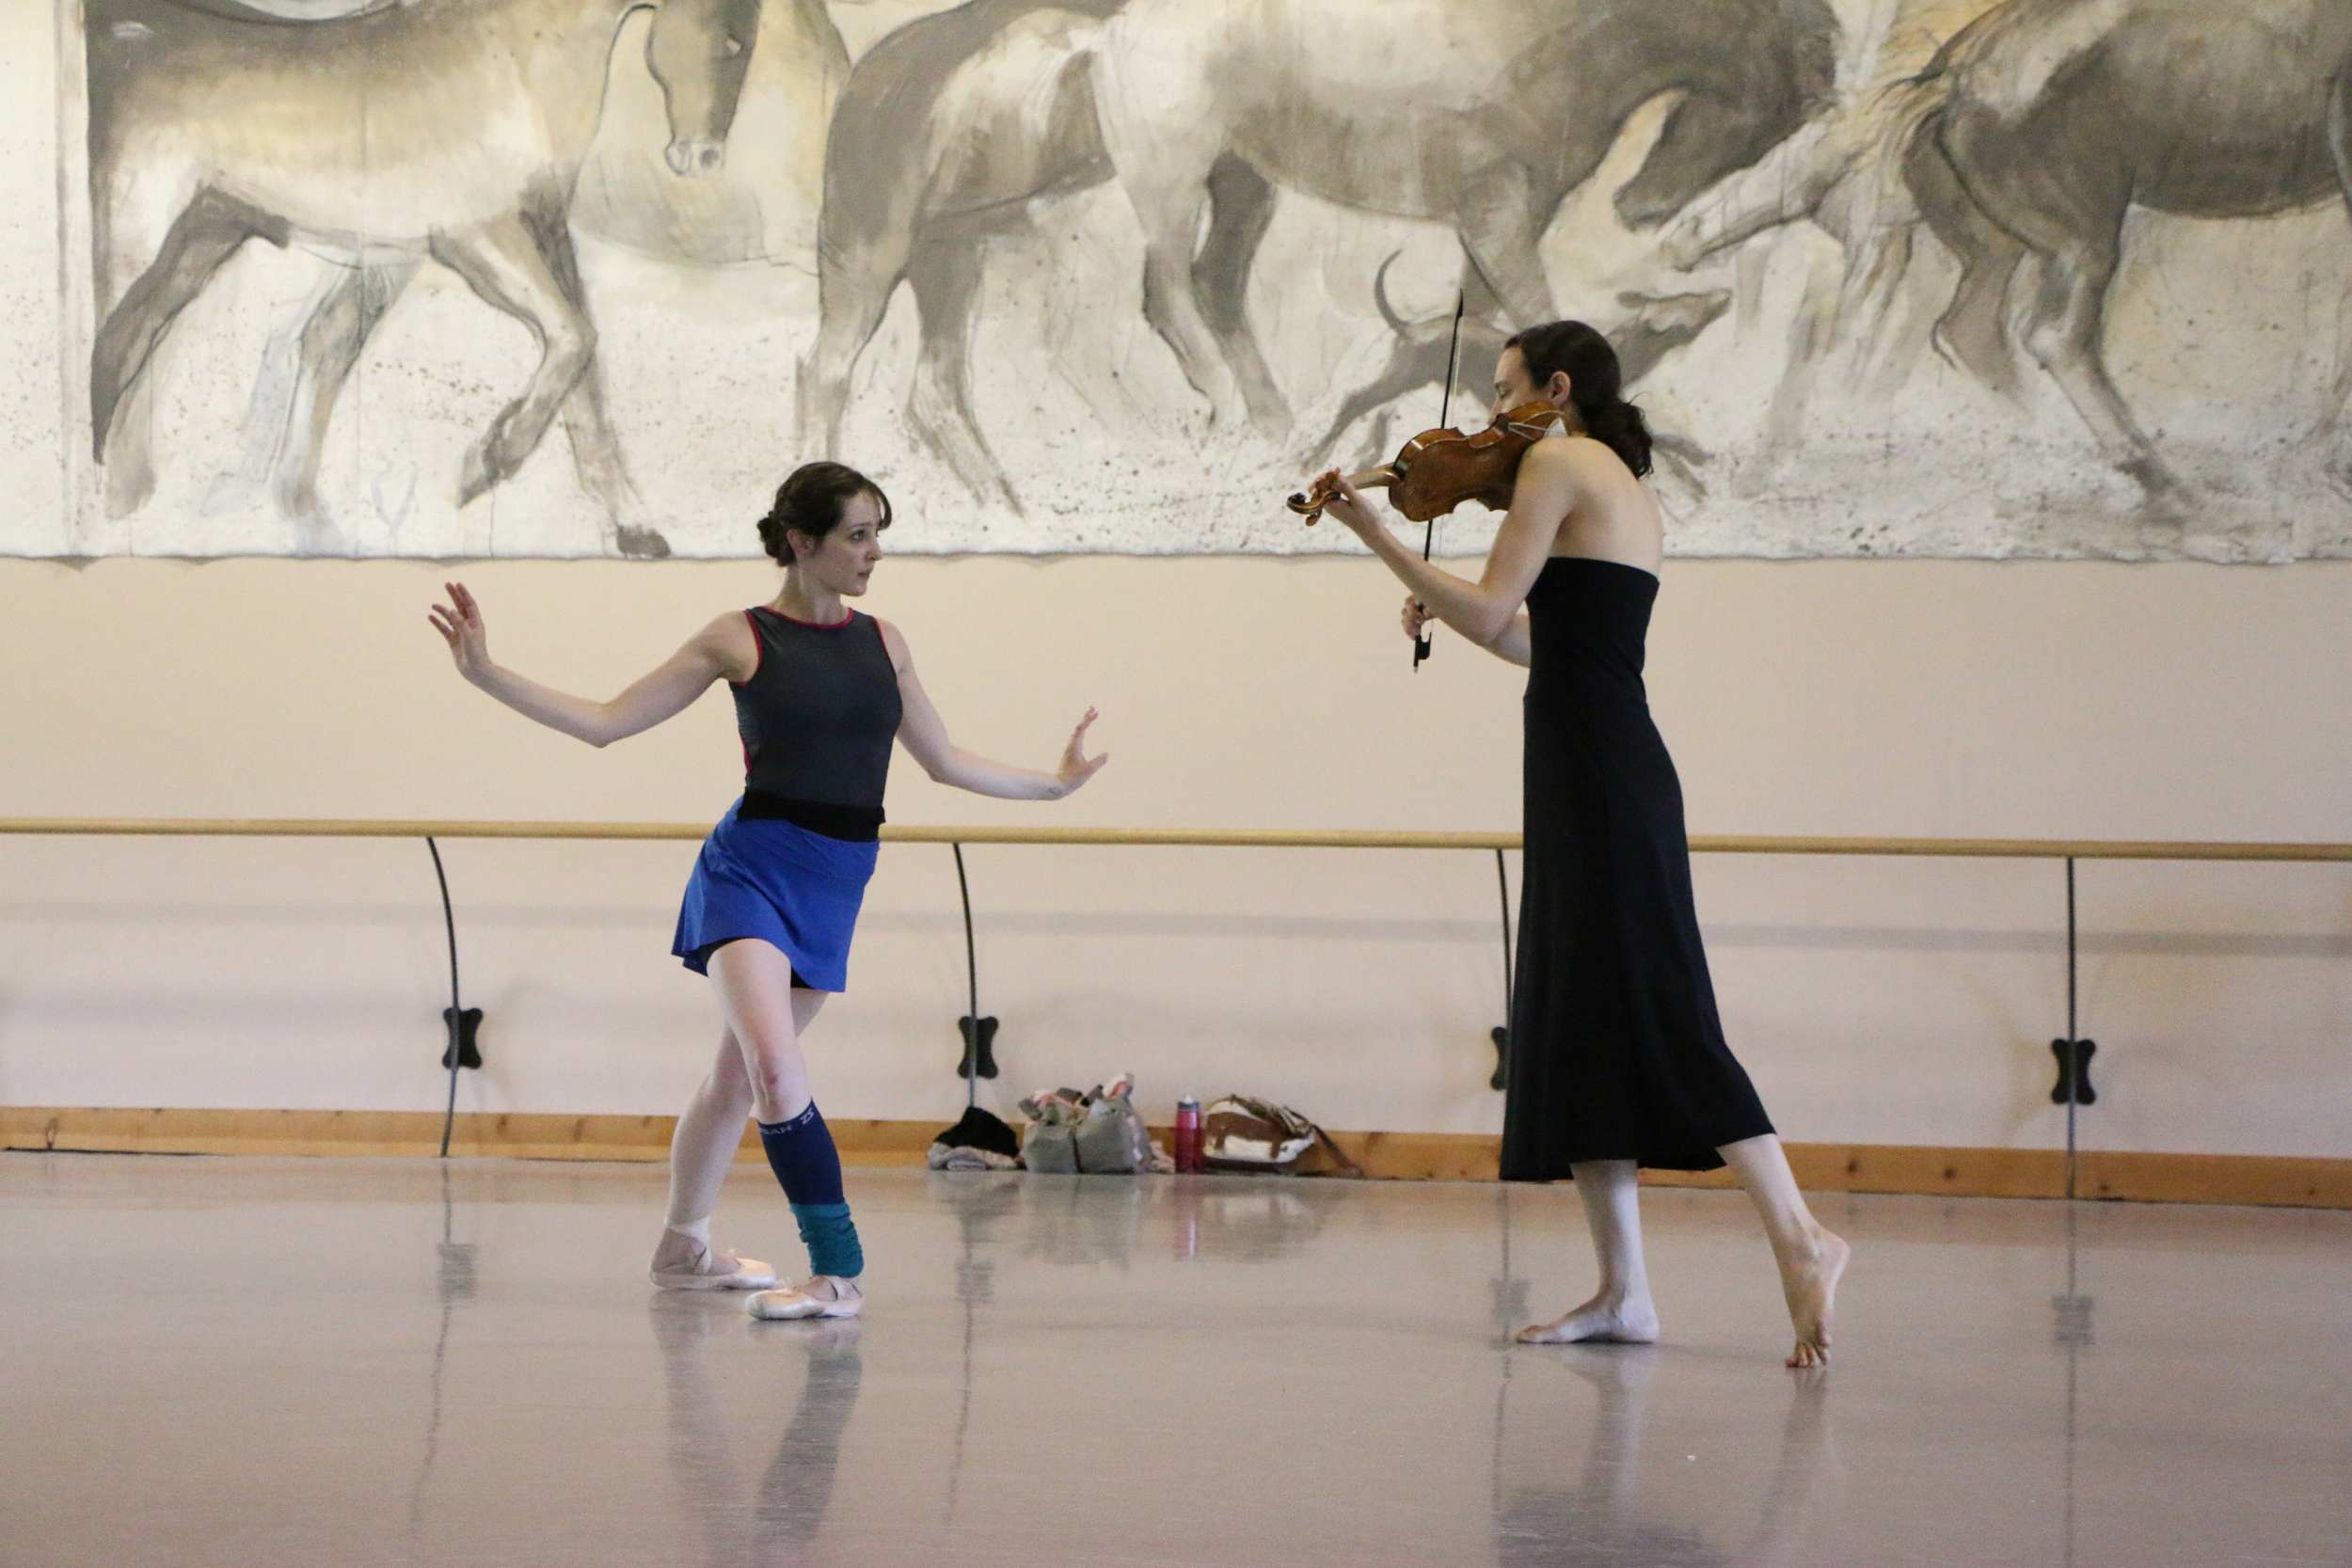 Jessica Tretter and Liv Heym rehearsing Querencia by Michele Wiles